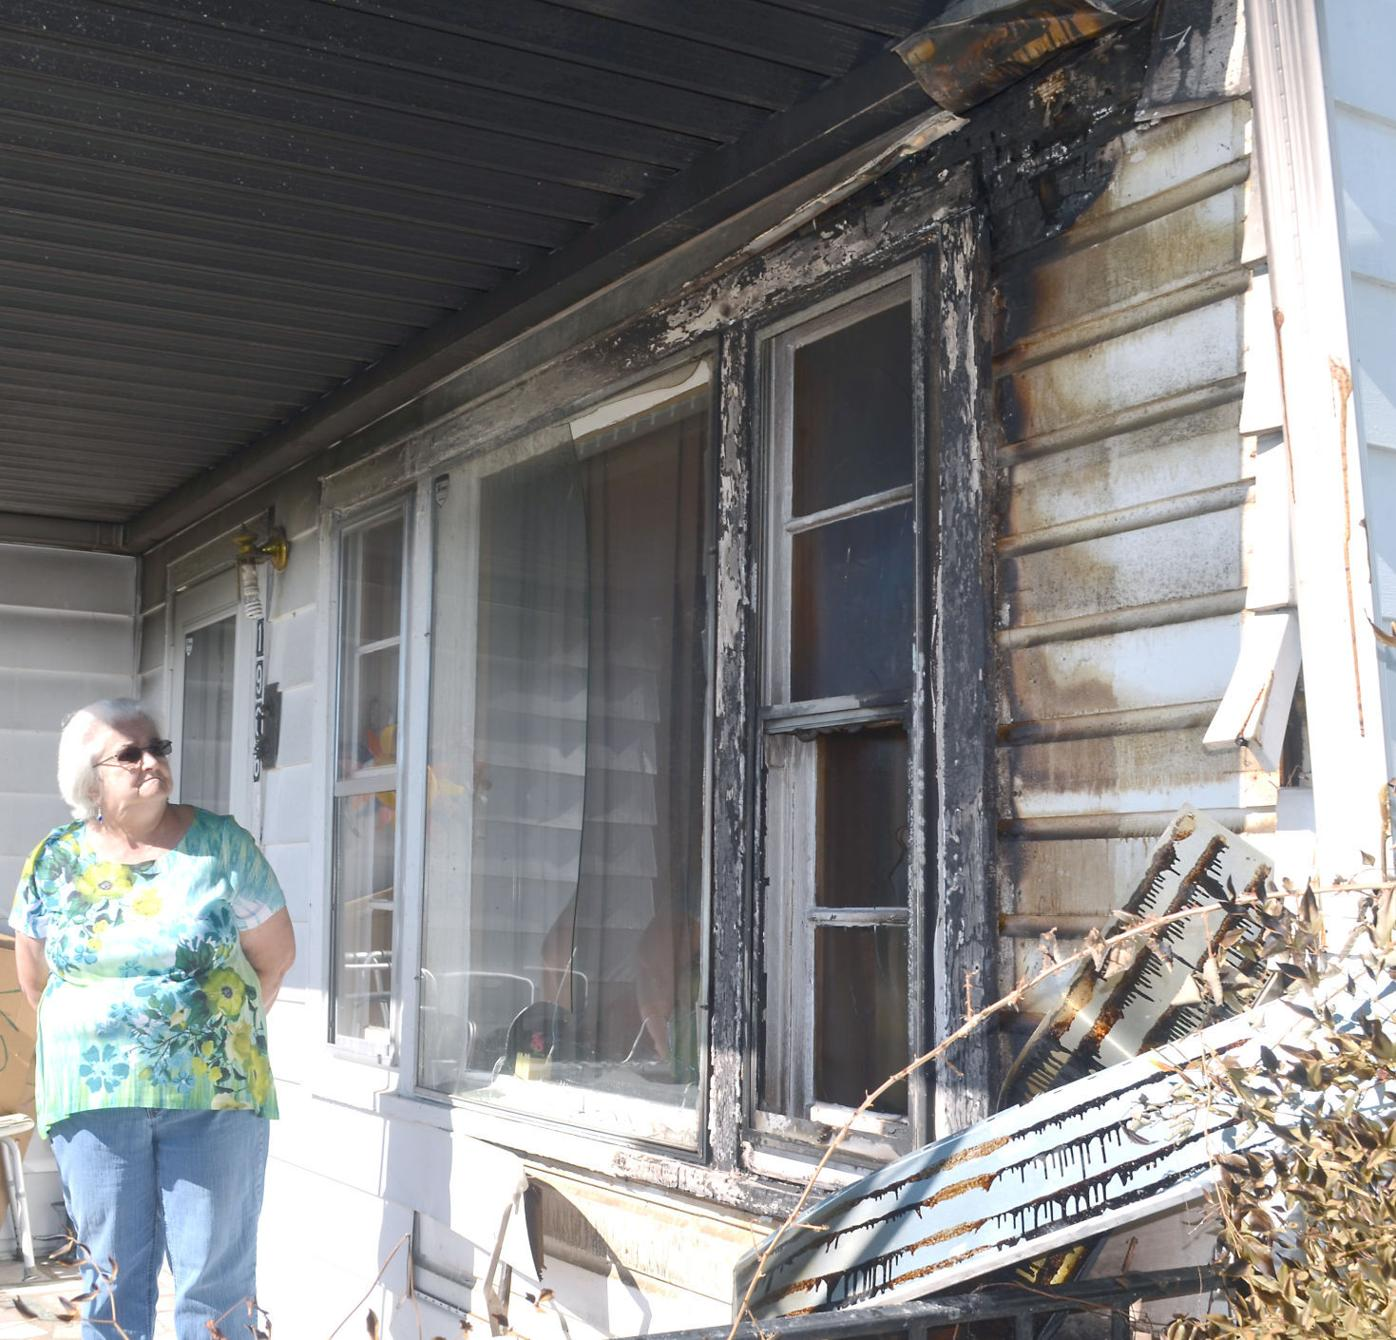 Woman Inspects Fire Damage To Porch